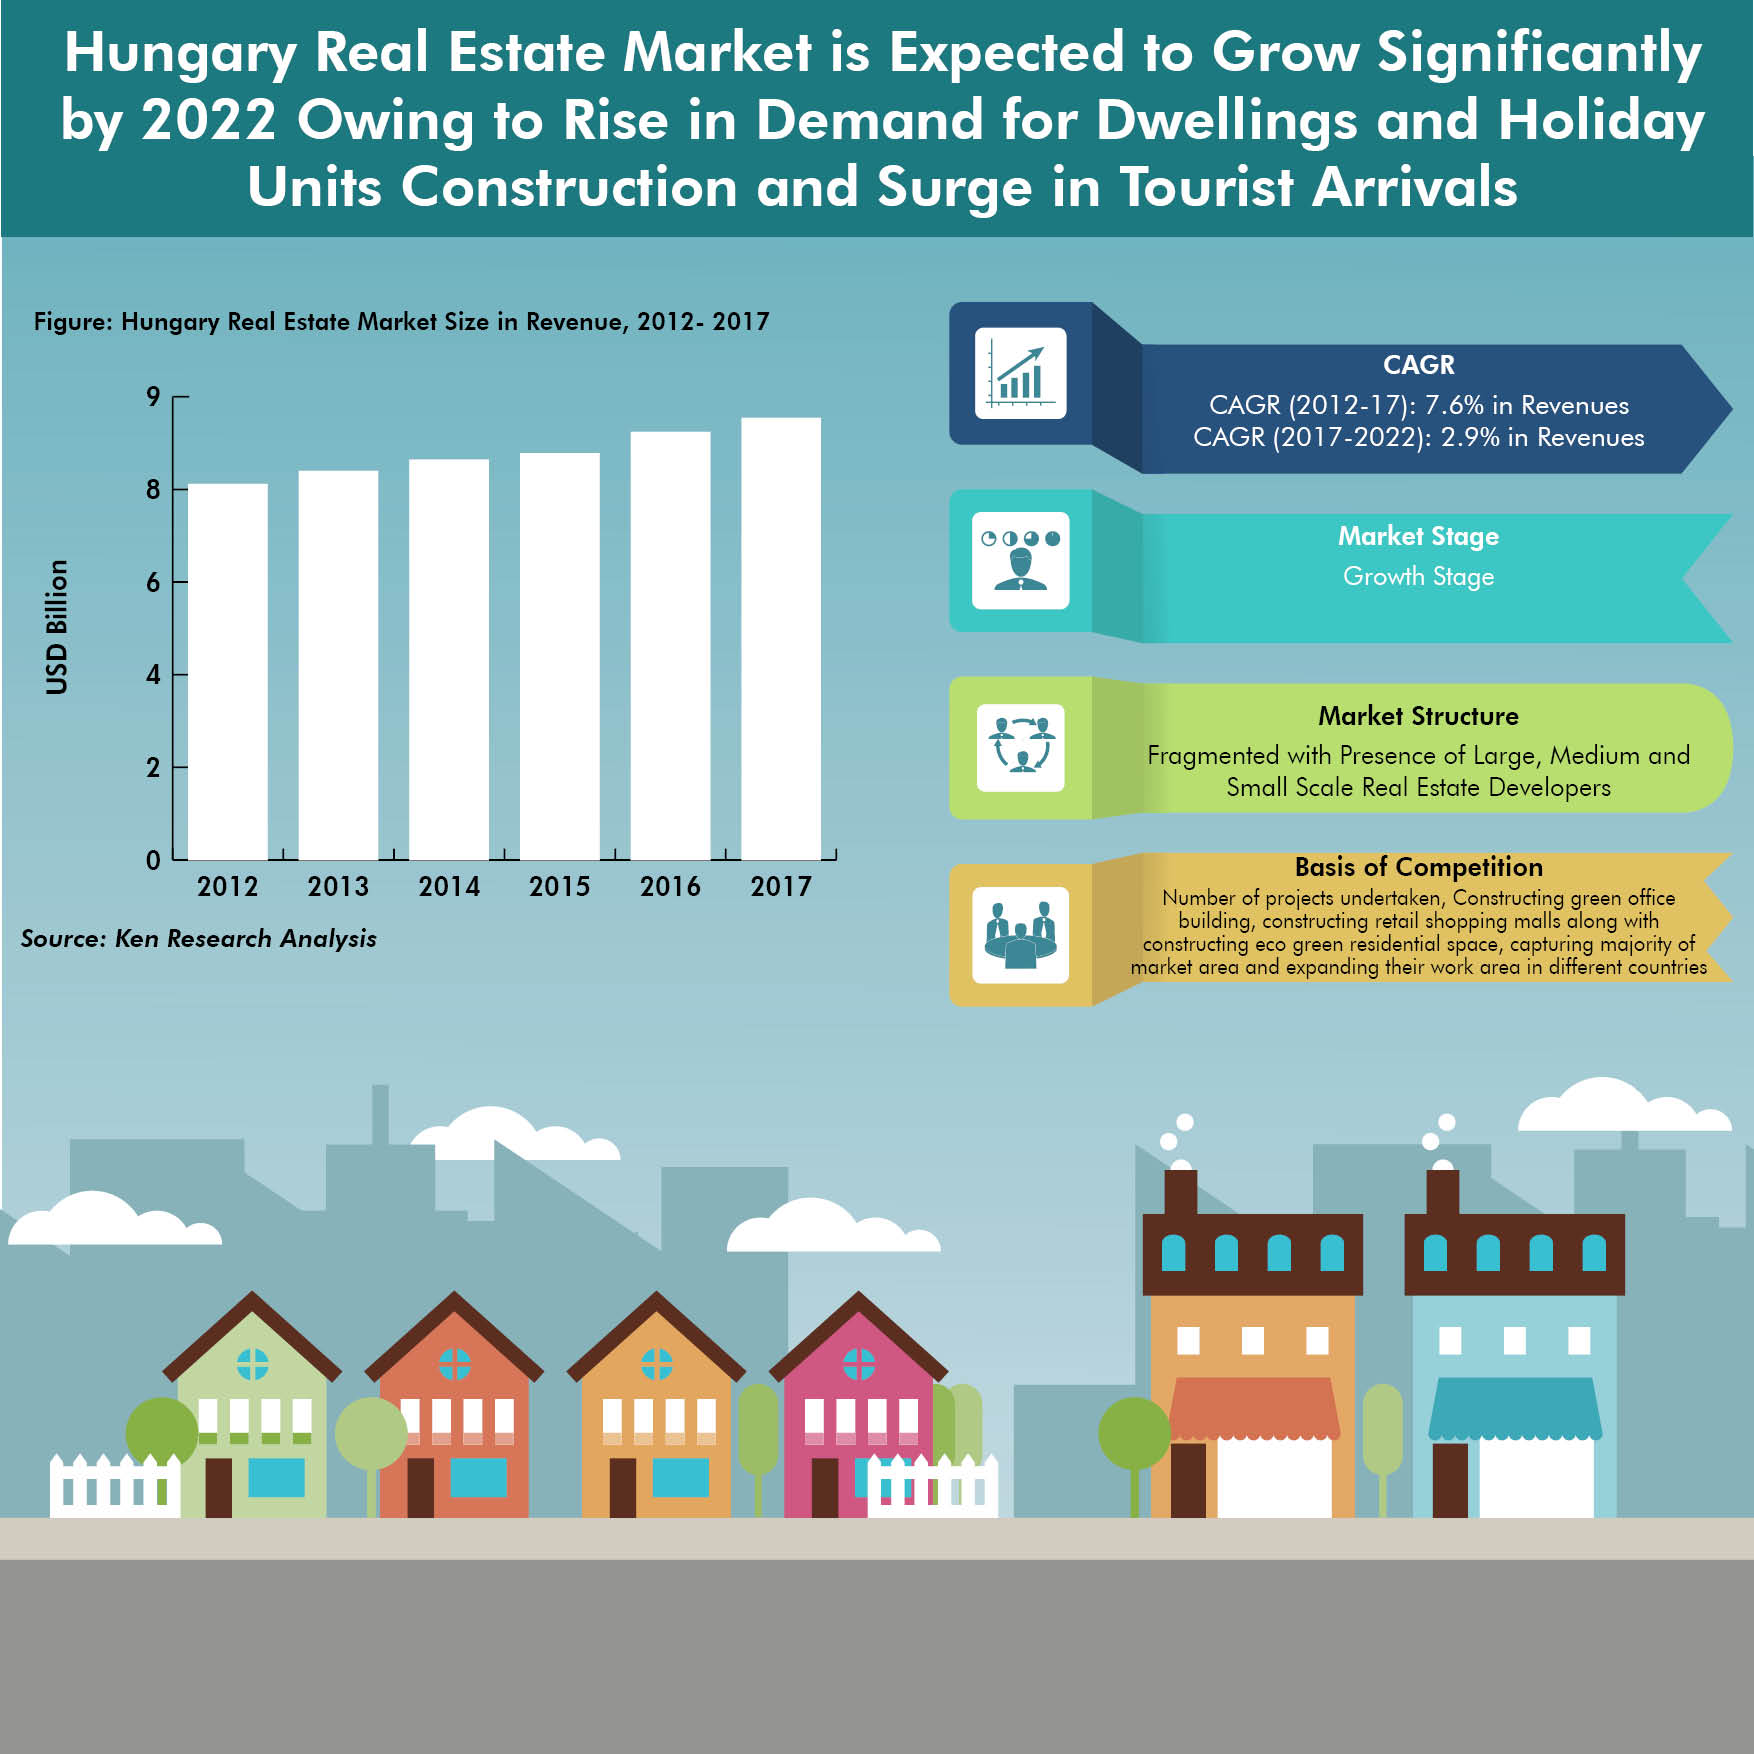 Hungary Real Estate Market